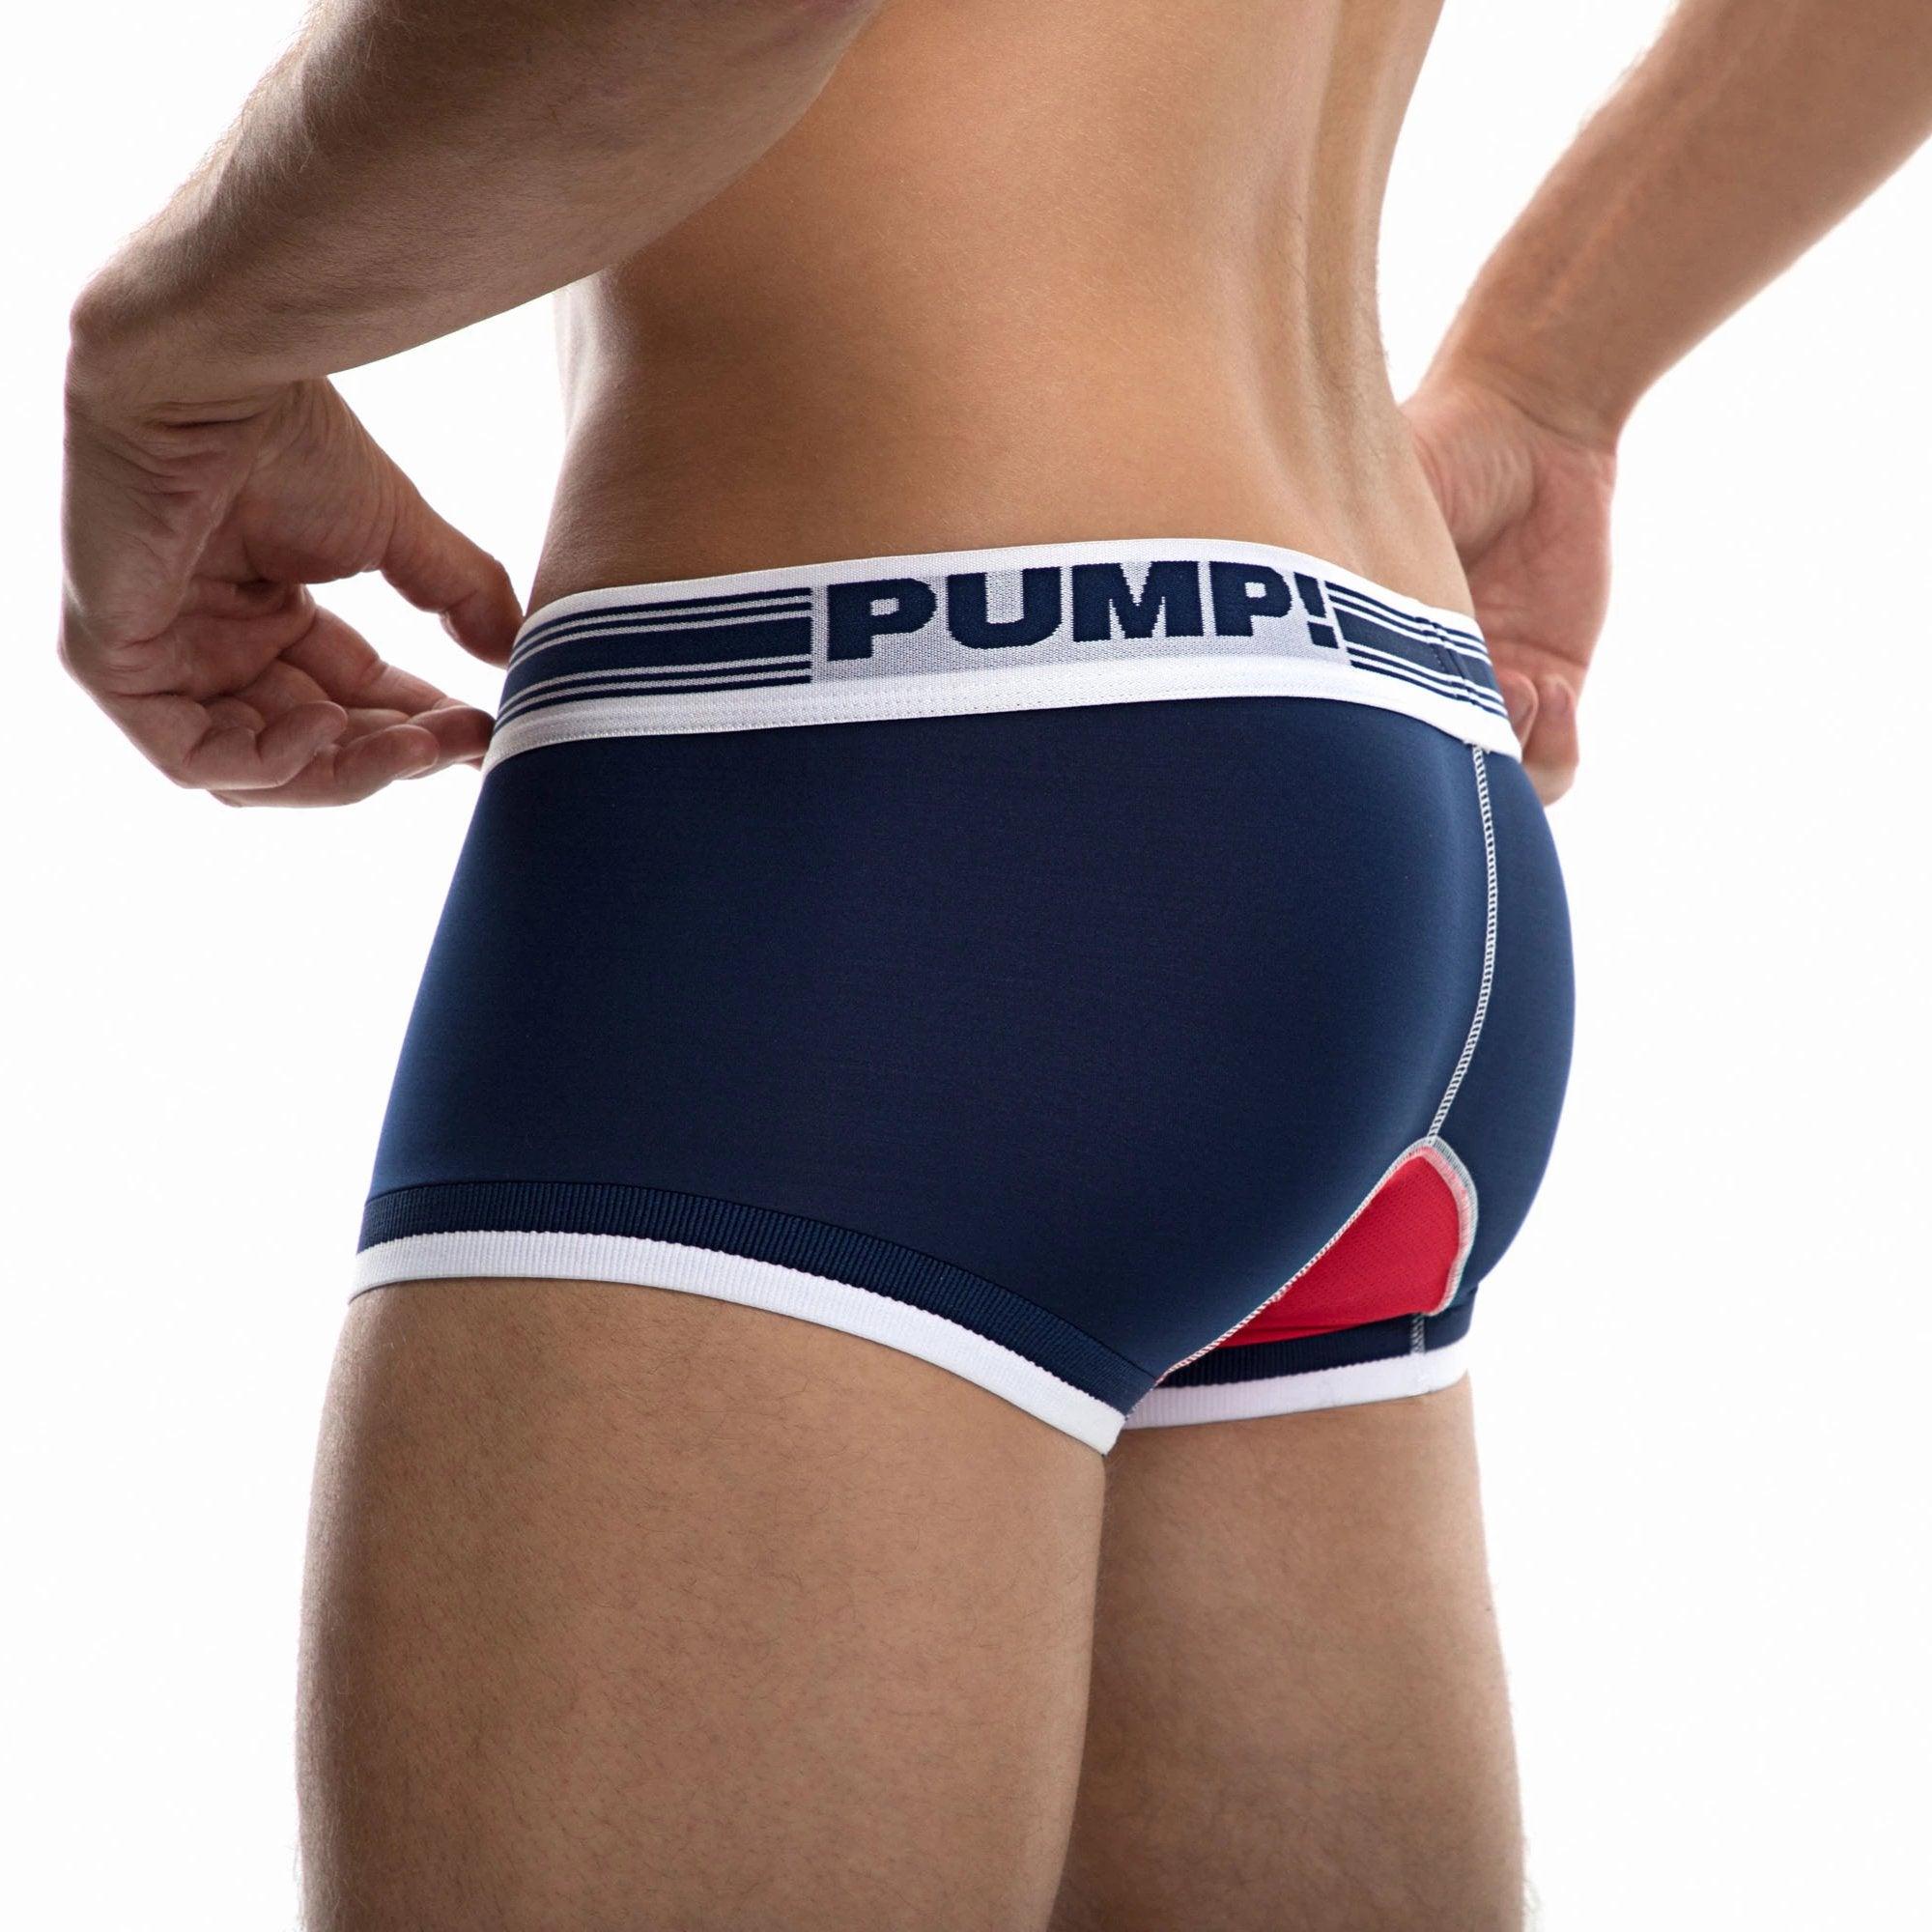 Touchdown Academy Boxer Back by PUMP! Underwear at Trenderwear.com